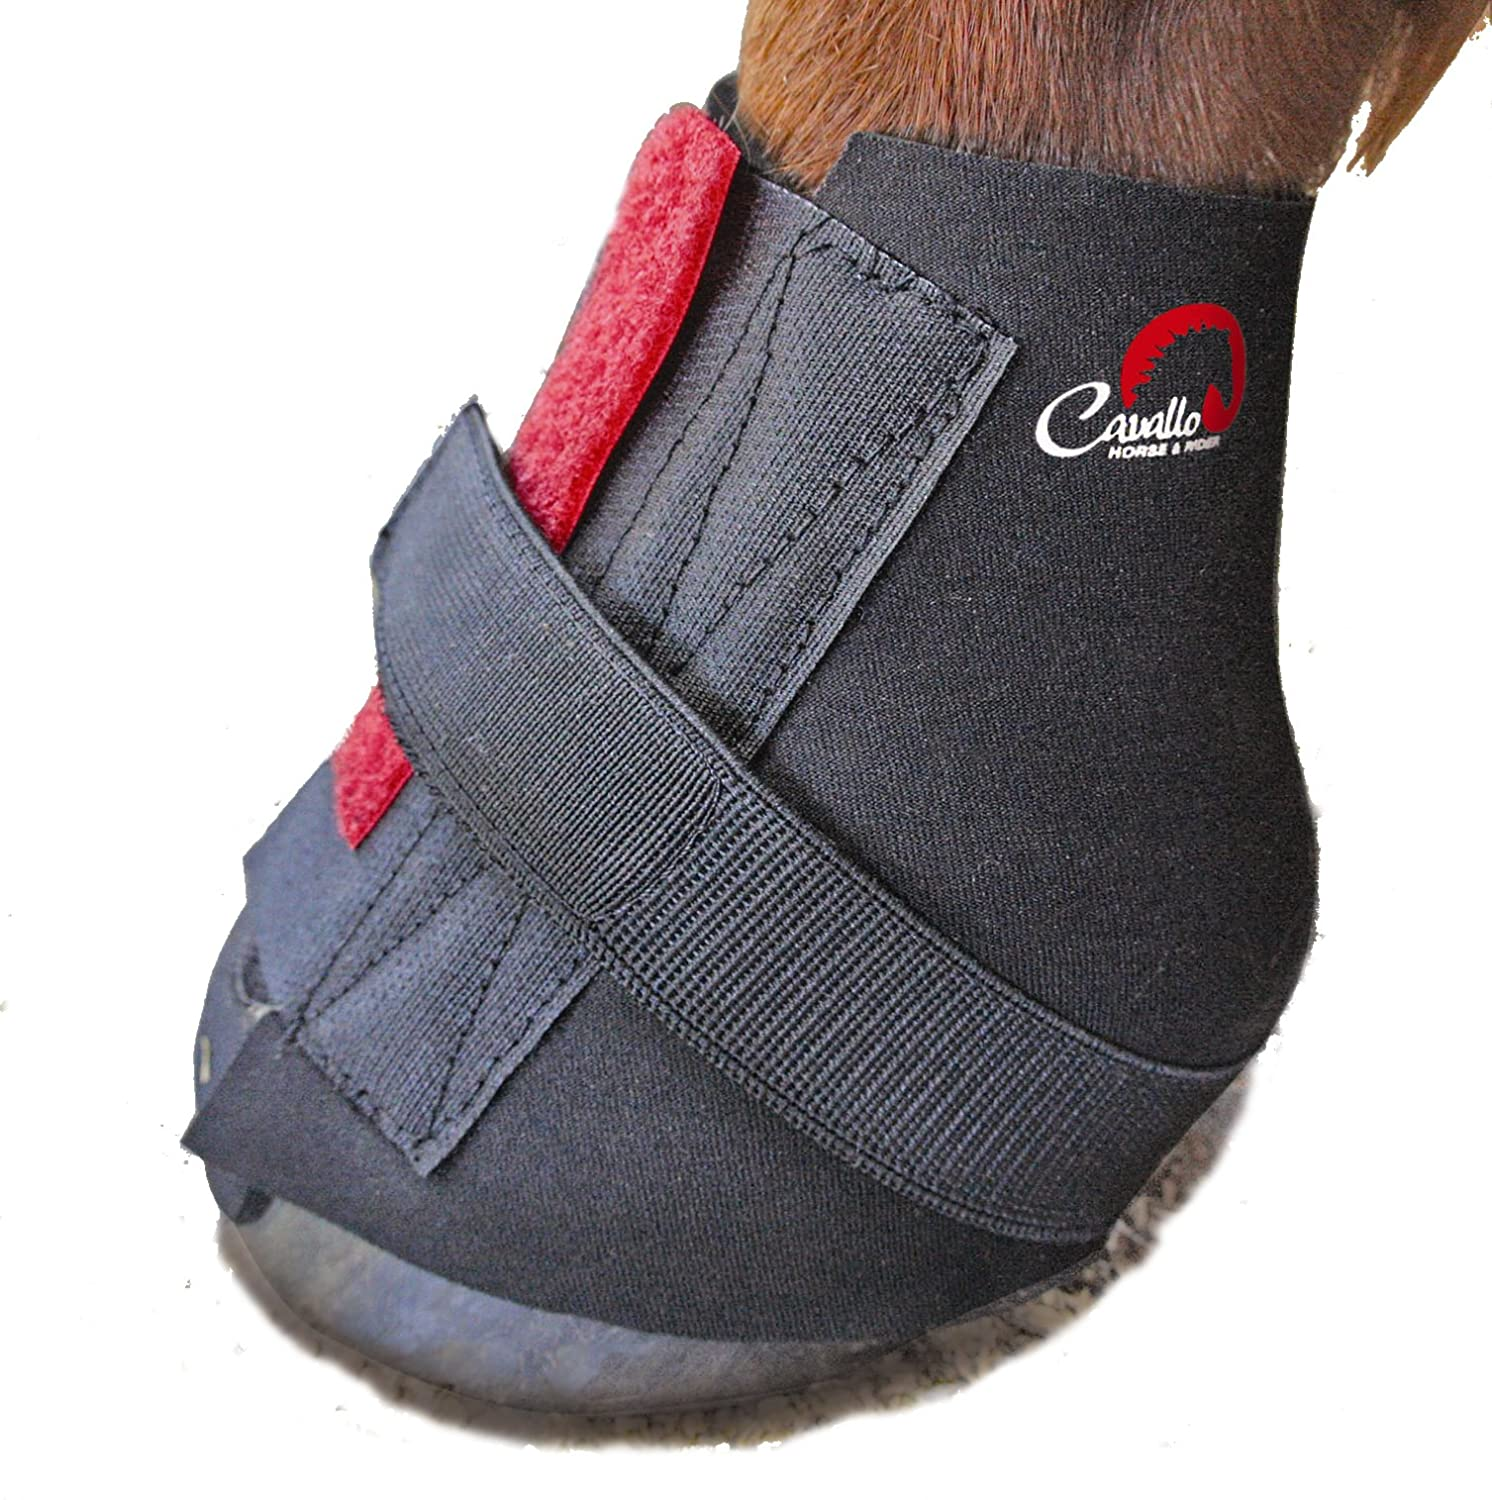 Gel Wraps For Horses Cavallo Pastern Wrap For Horse